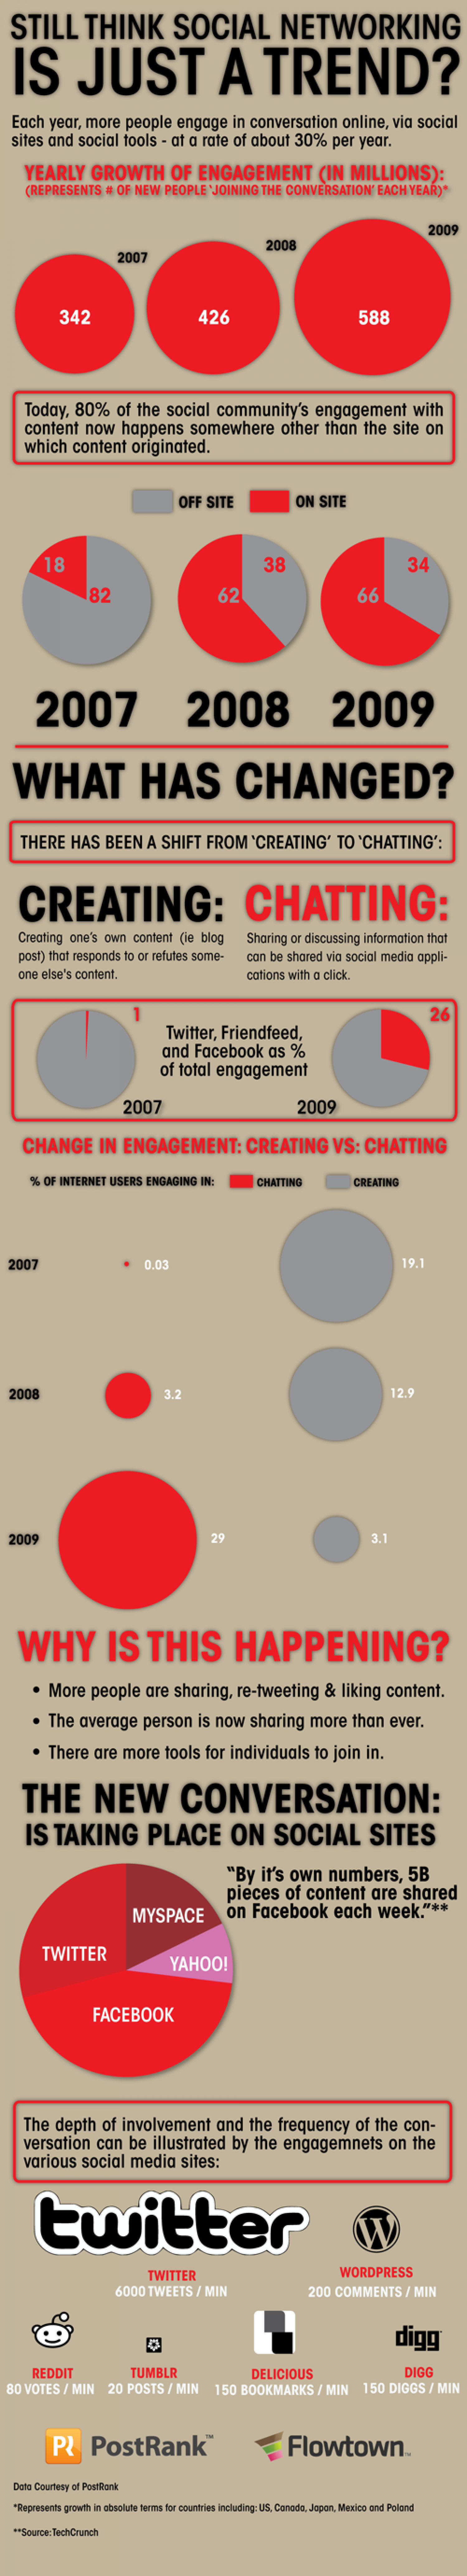 Still Think Social Media is Just a Trend?  Infographic